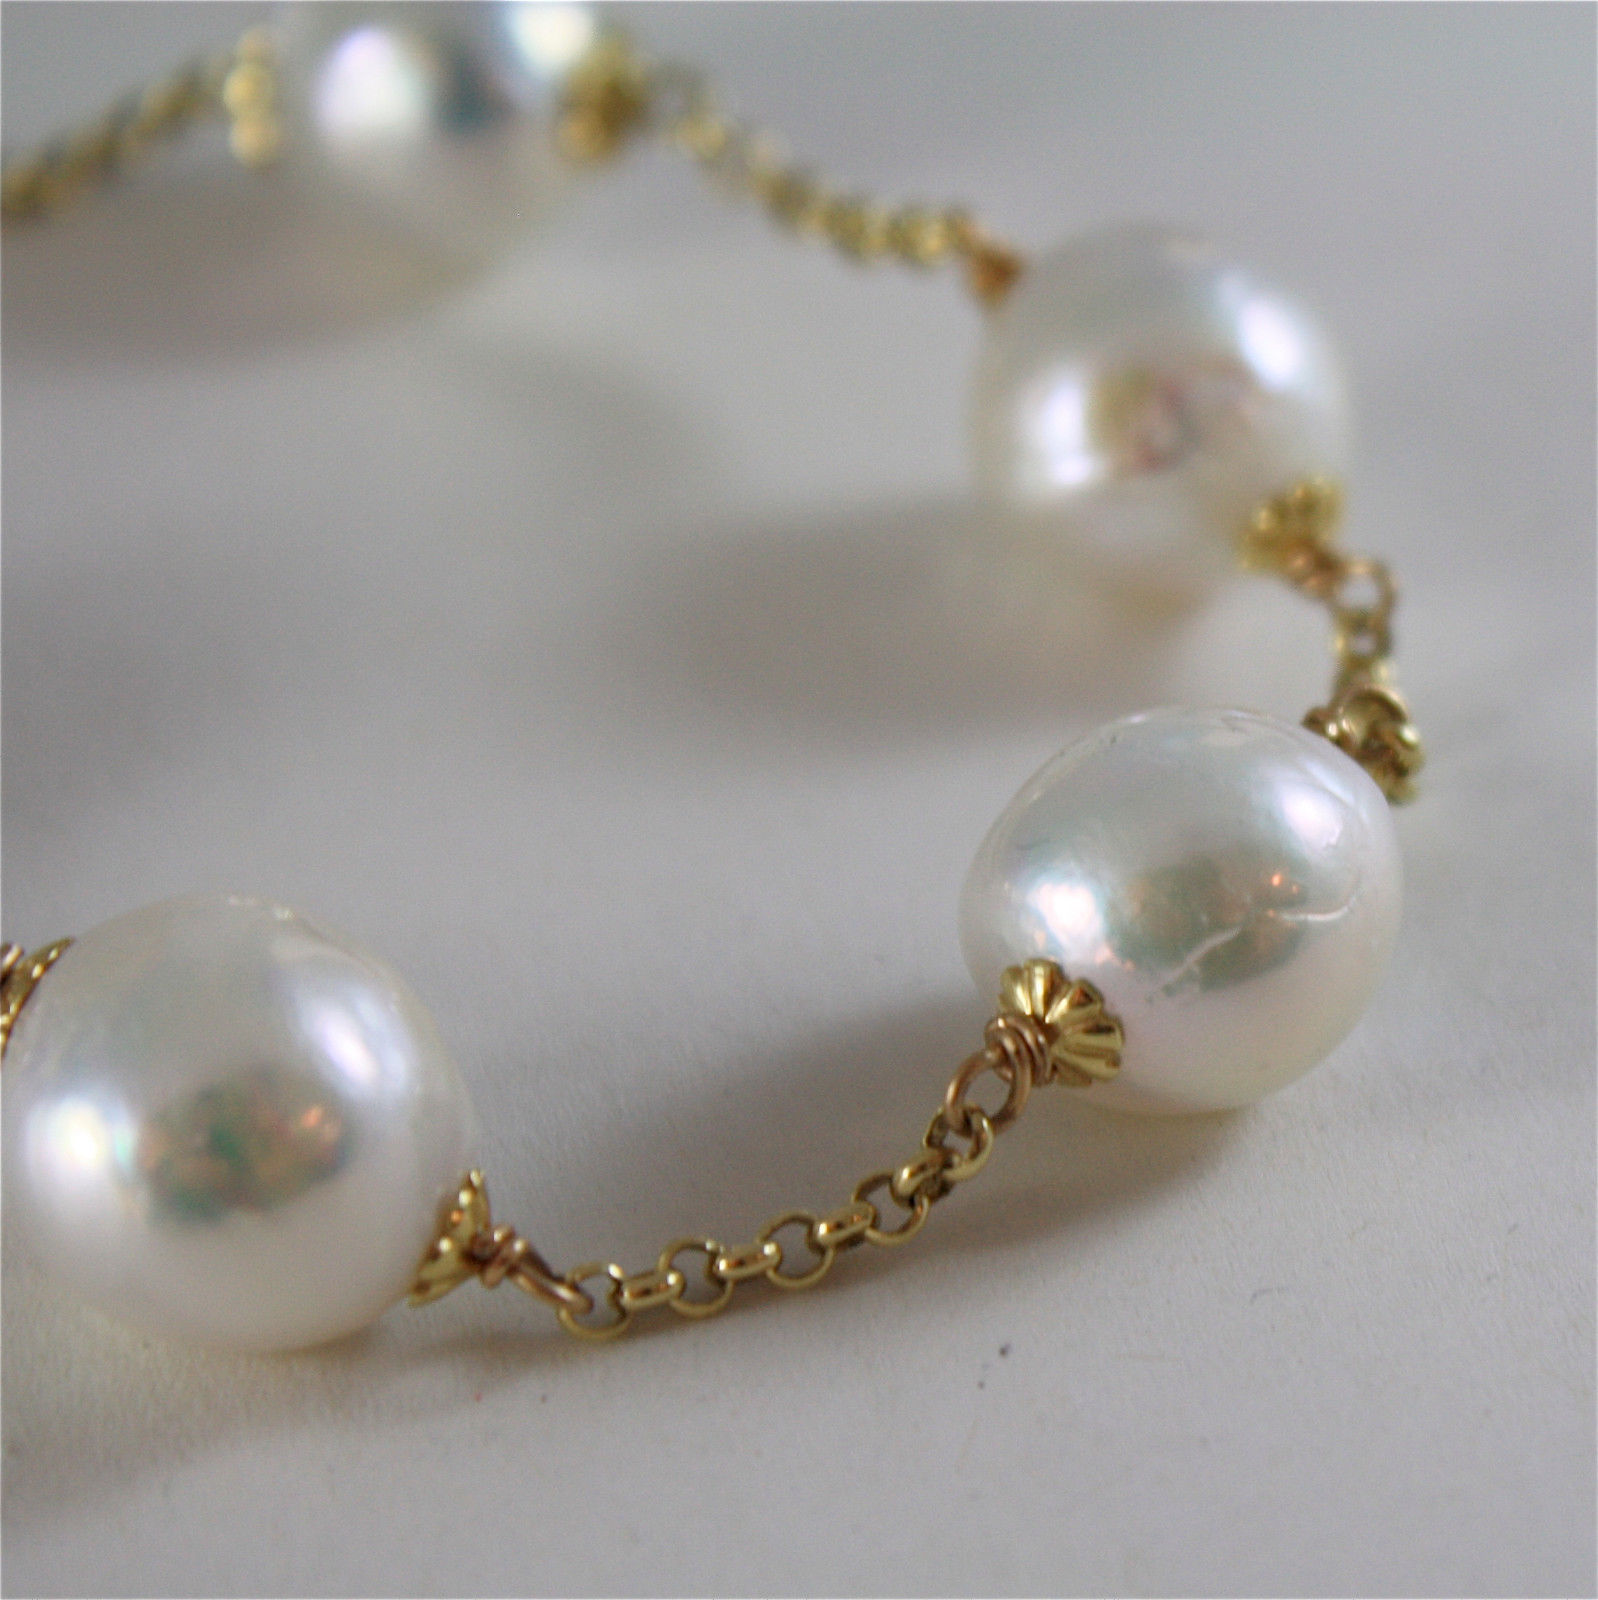 18K YELLOW GOLD BRACELET WITH VERY SHINY BAROQUE PEARLS 8.25 IN MADE IN ITALY